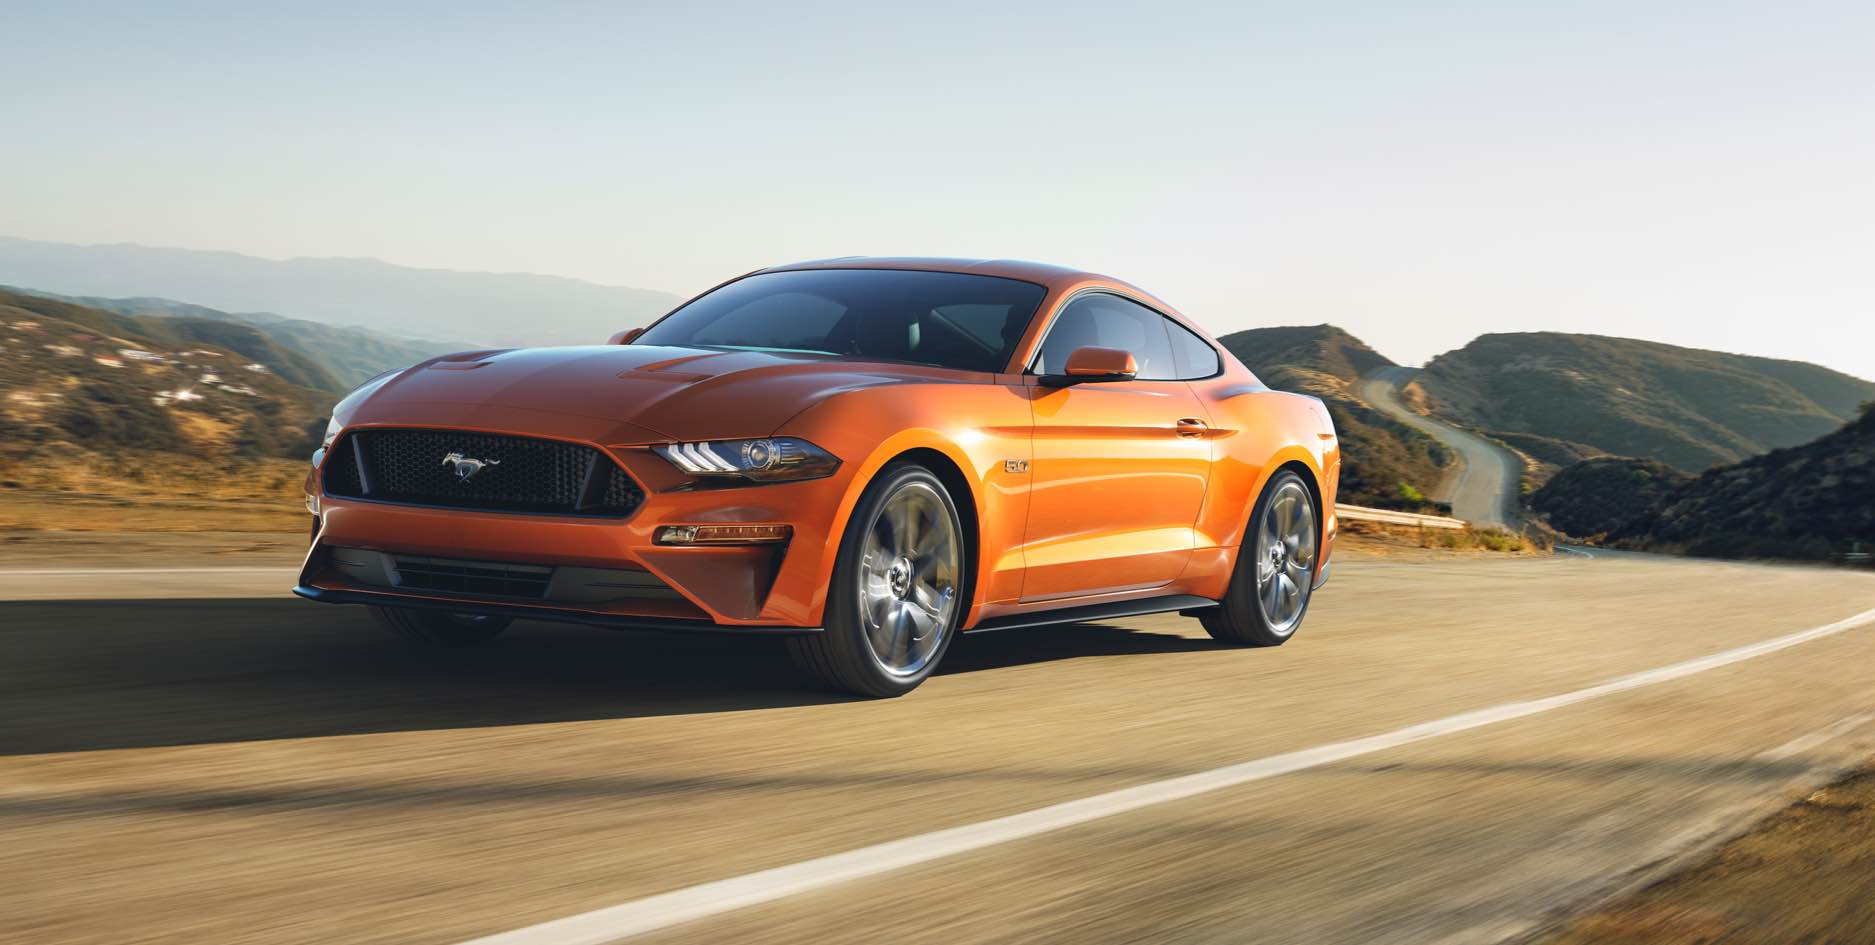 2018 Mustang Gallery 11 Santa Monica Ford Lincoln | New Ford dealership in Santa Monica, CA 90404